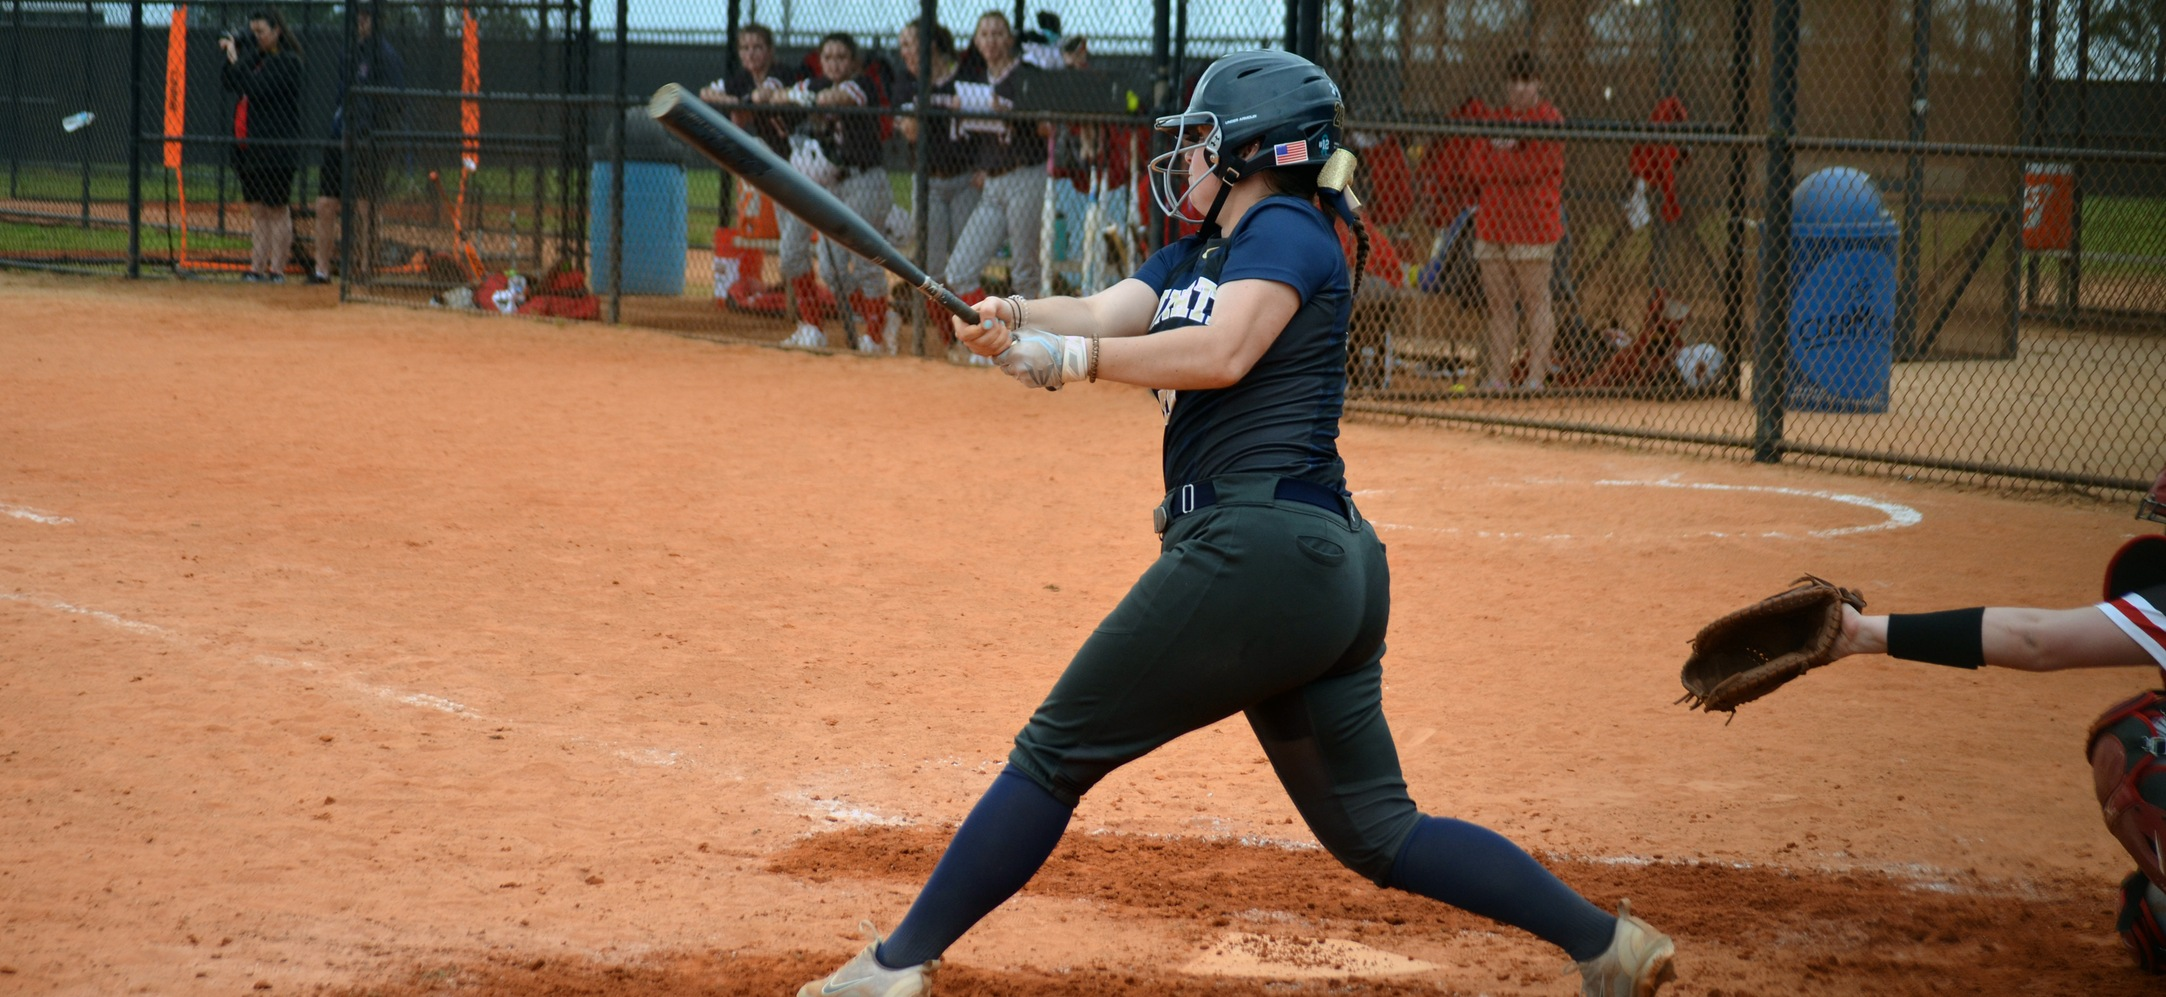 Ashley Clark went 1-1, with 2 RBI and a home run in the Eagles, 4-2 loss against St. Lawrence.